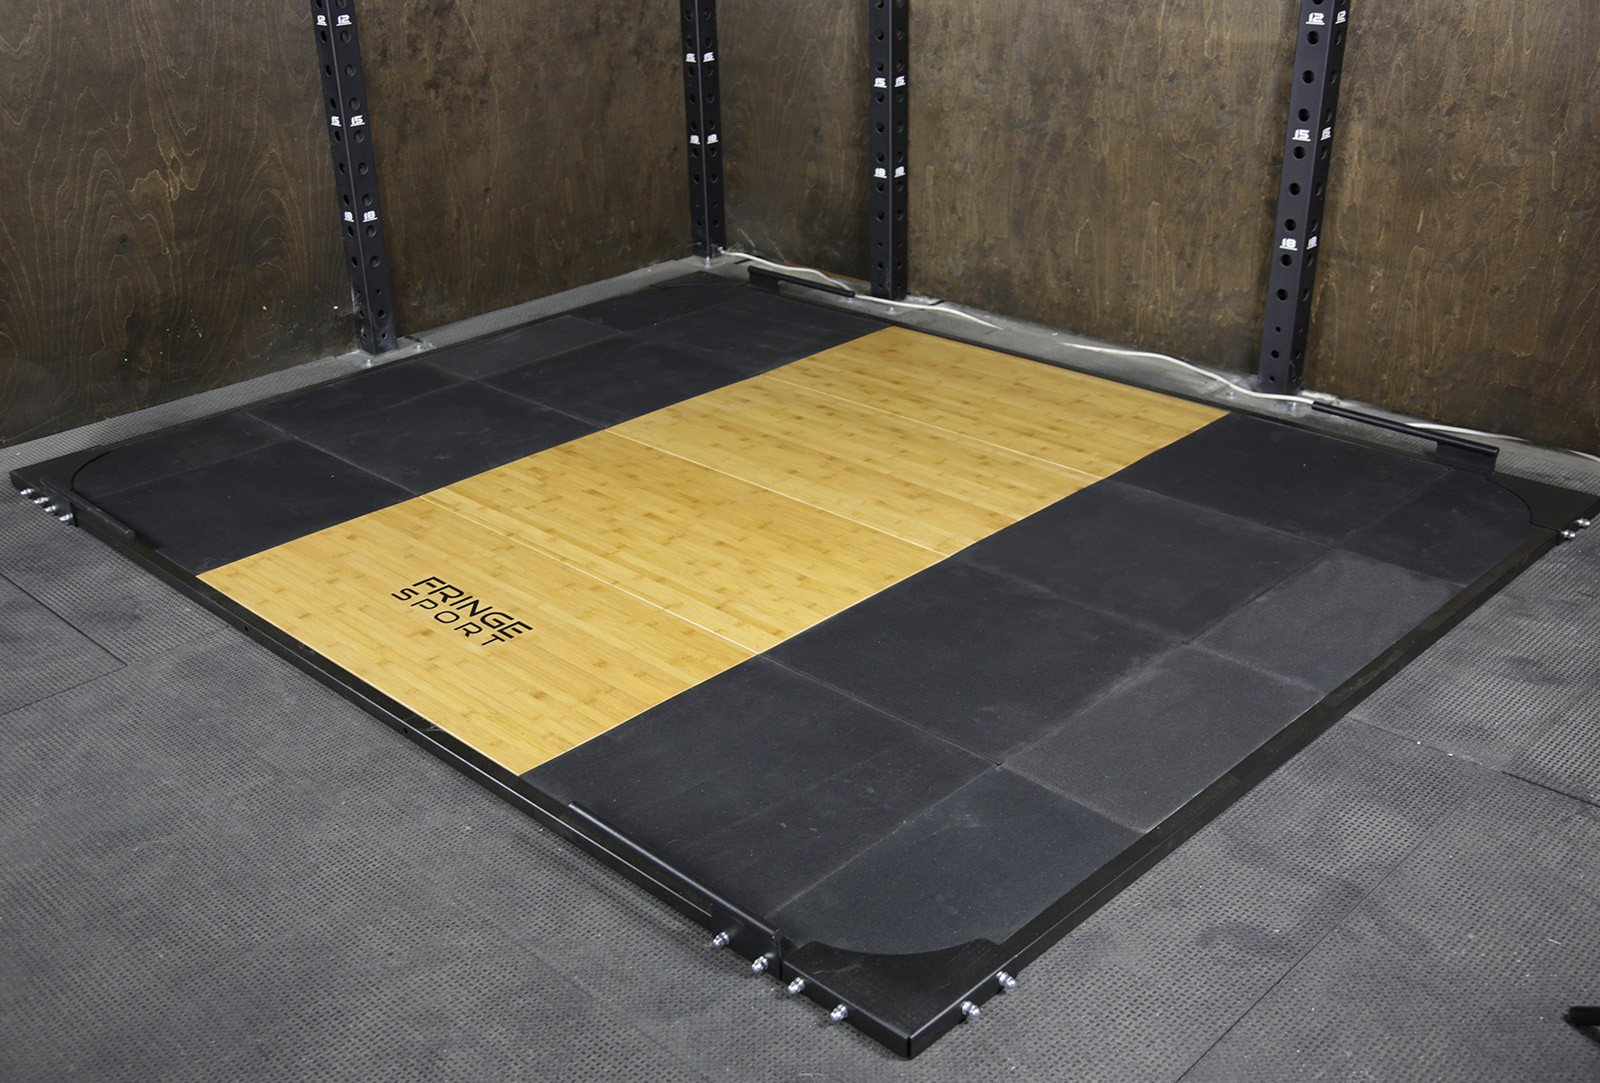 Weightlifting platform by onefitwonder fringesport equipment weightlifting platform dailygadgetfo Choice Image